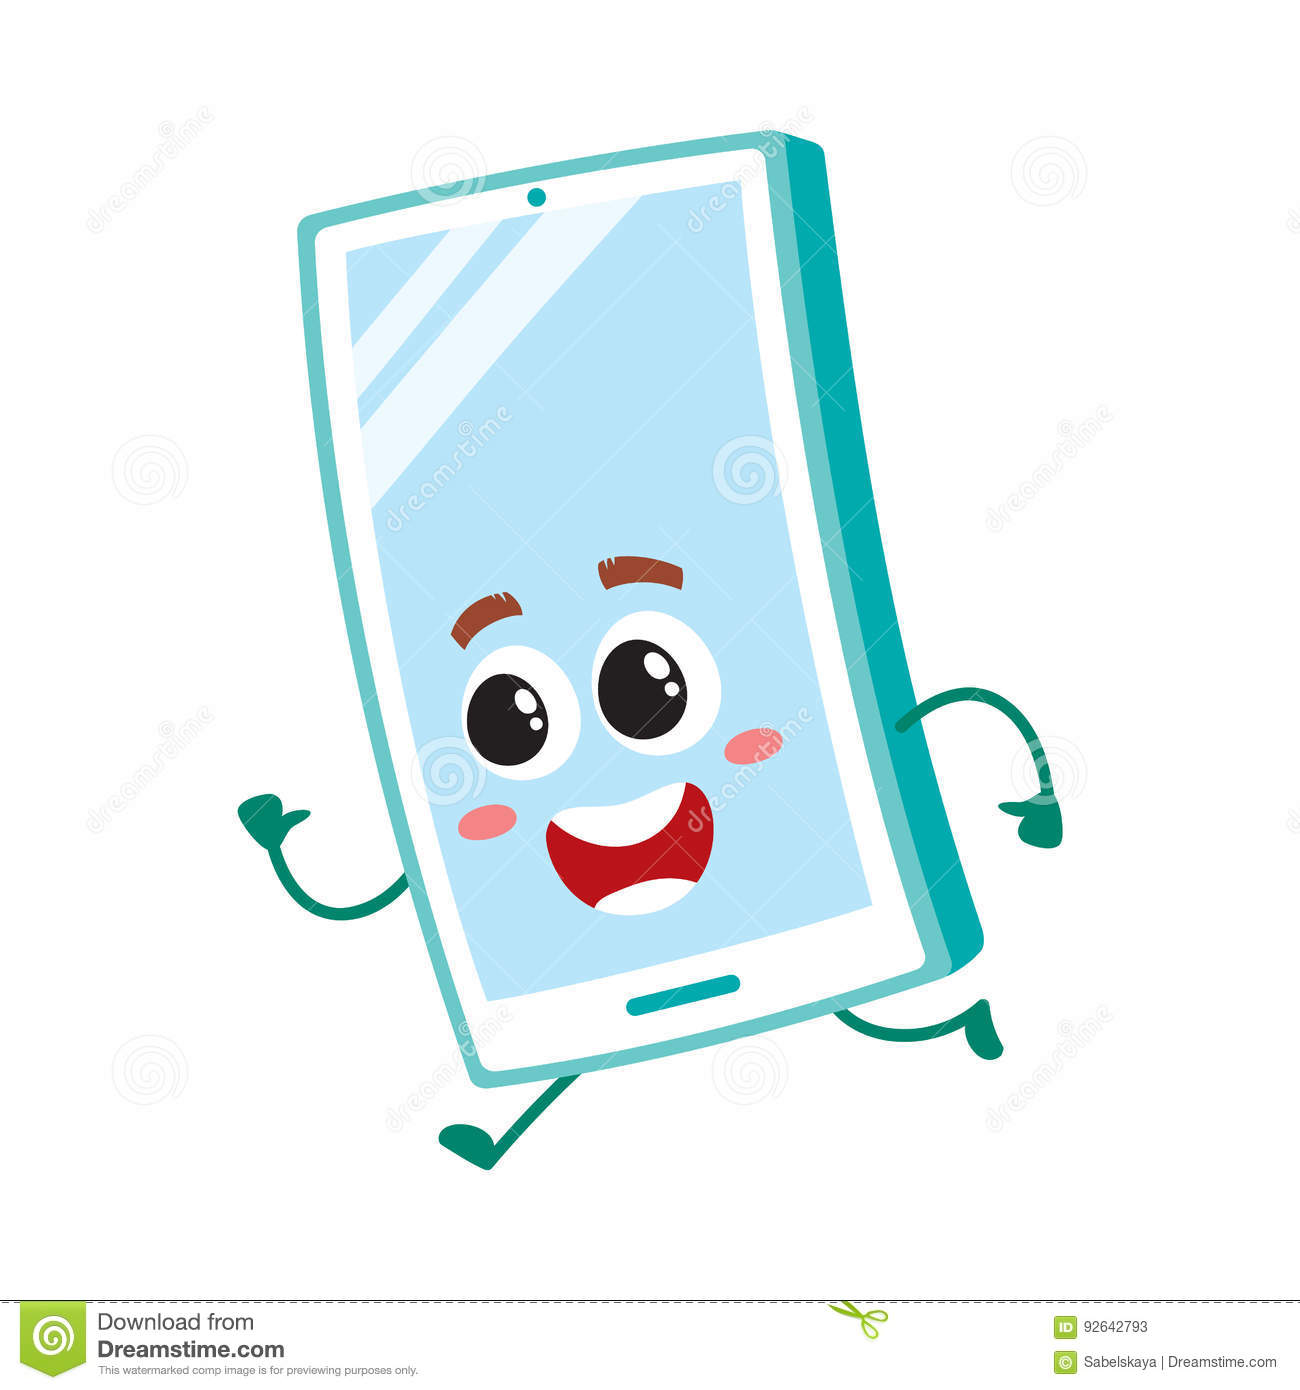 Funny Cartoon Mobile Phone Smartphone Character Running Hurrying Somewhere Stock Vector Illustration Of Mascot Cell 92642793